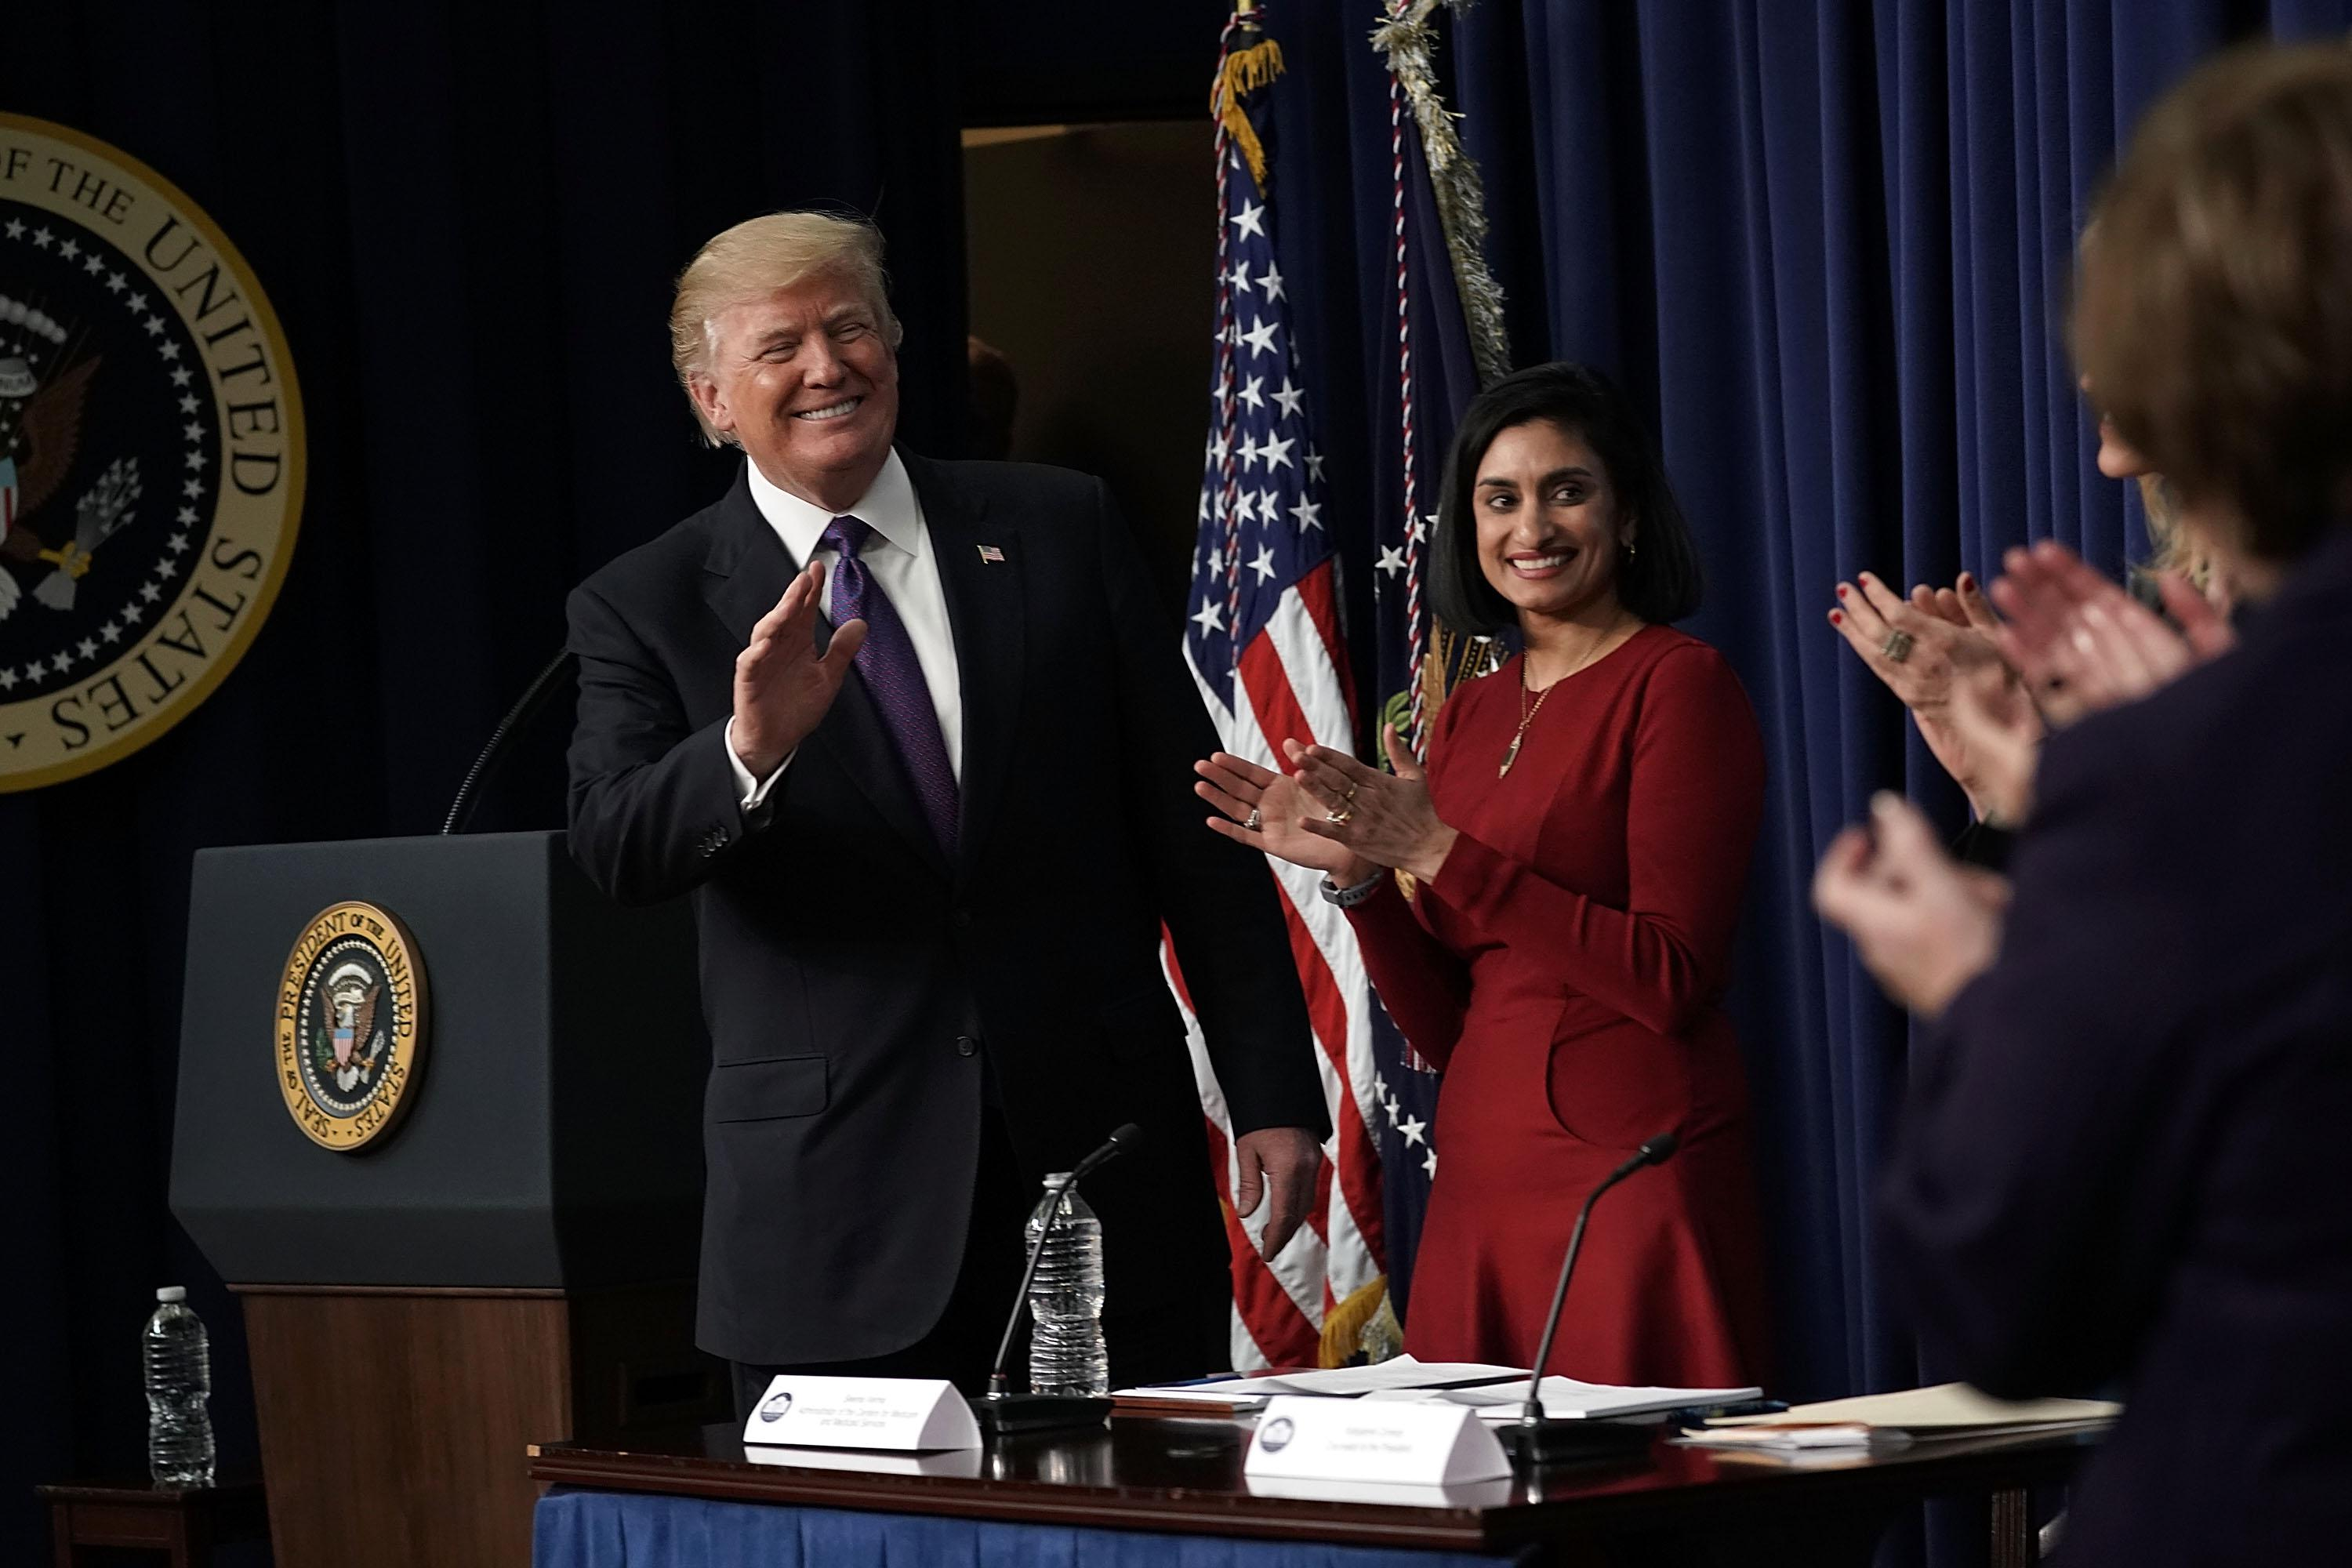 WASHINGTON, DC - JANUARY 16:  U.S. President Donald Trump (L) acknowledges the audience as Administrator of the Centers for Medicare and Medicaid Services Seema Verma (2nd L) looks on as he stops by a Conversations with the Women of America panel at the South Court Auditorium of Eisenhower Executive Office Building January 18, 2018 in Washington, DC. The three-part panel features ÒAmerican women from various backgrounds and experiences who will speak with high-level women within the Trump Administration, about what has been accomplished to date to advance women at home, and in the workplace.Ó  (Photo by Alex Wong/Getty Images)